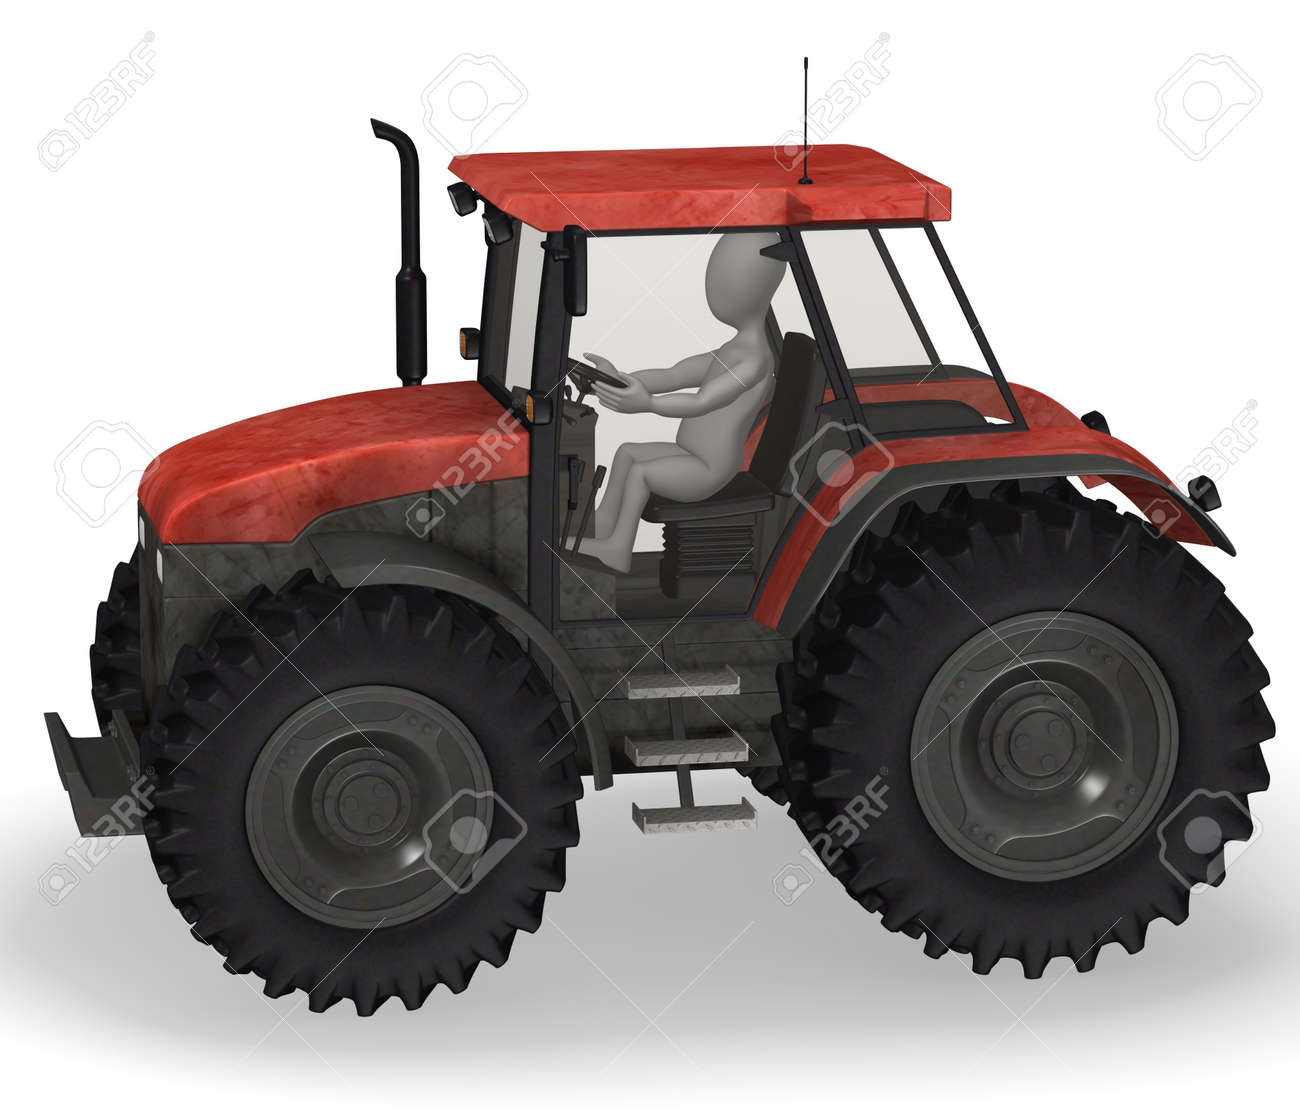 3d render of cartoon character with tractor machine Stock Photo - 12967472